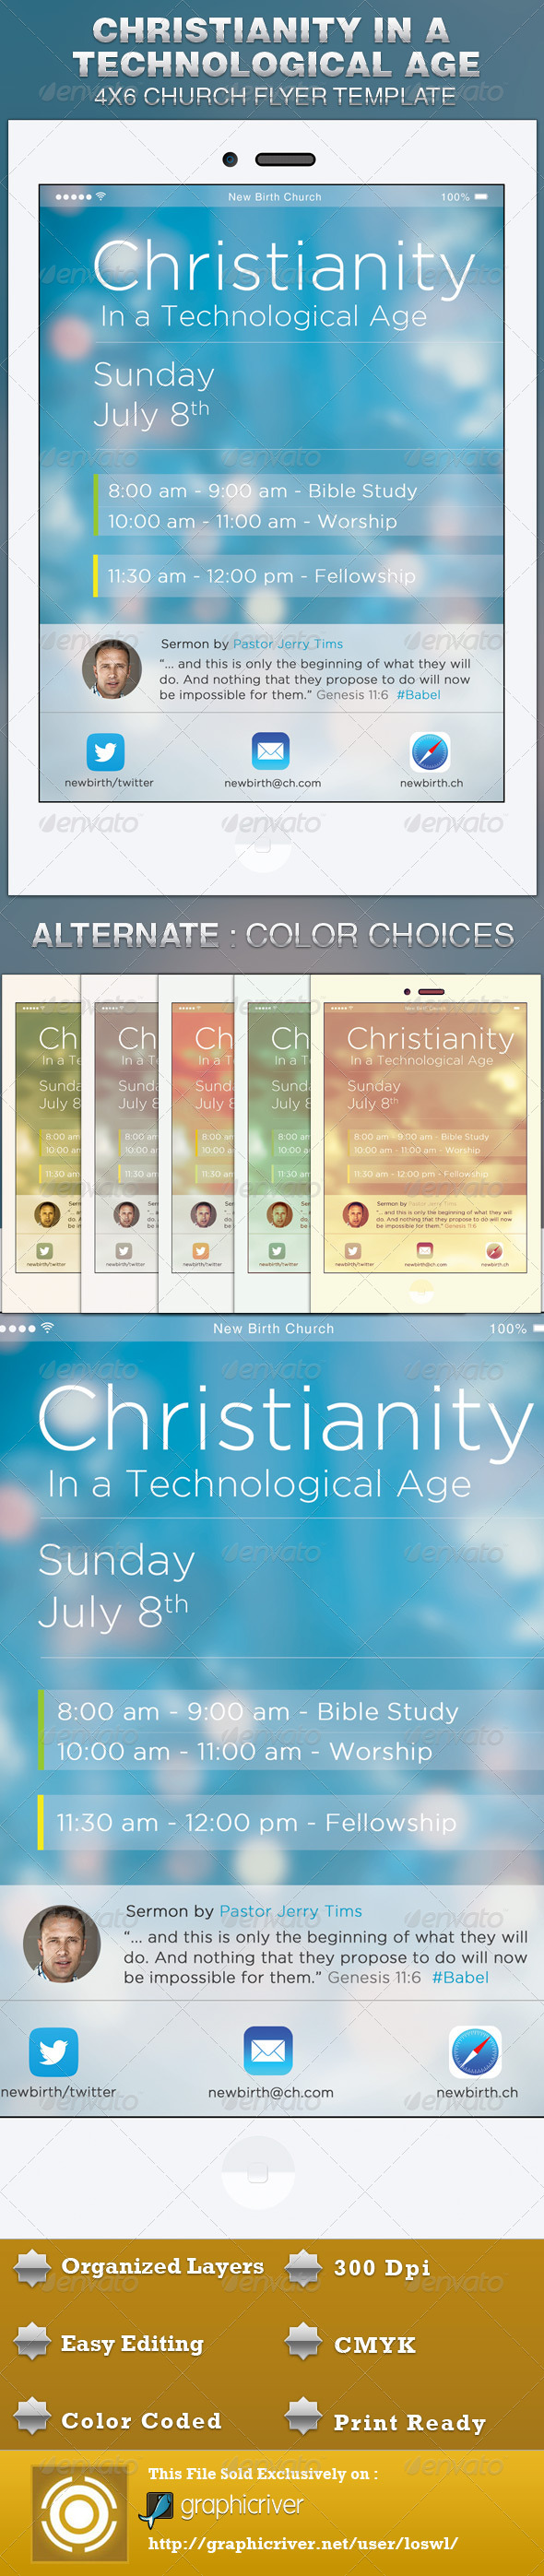 GraphicRiver Christianity In a Technological Age Church Flyer 5172854